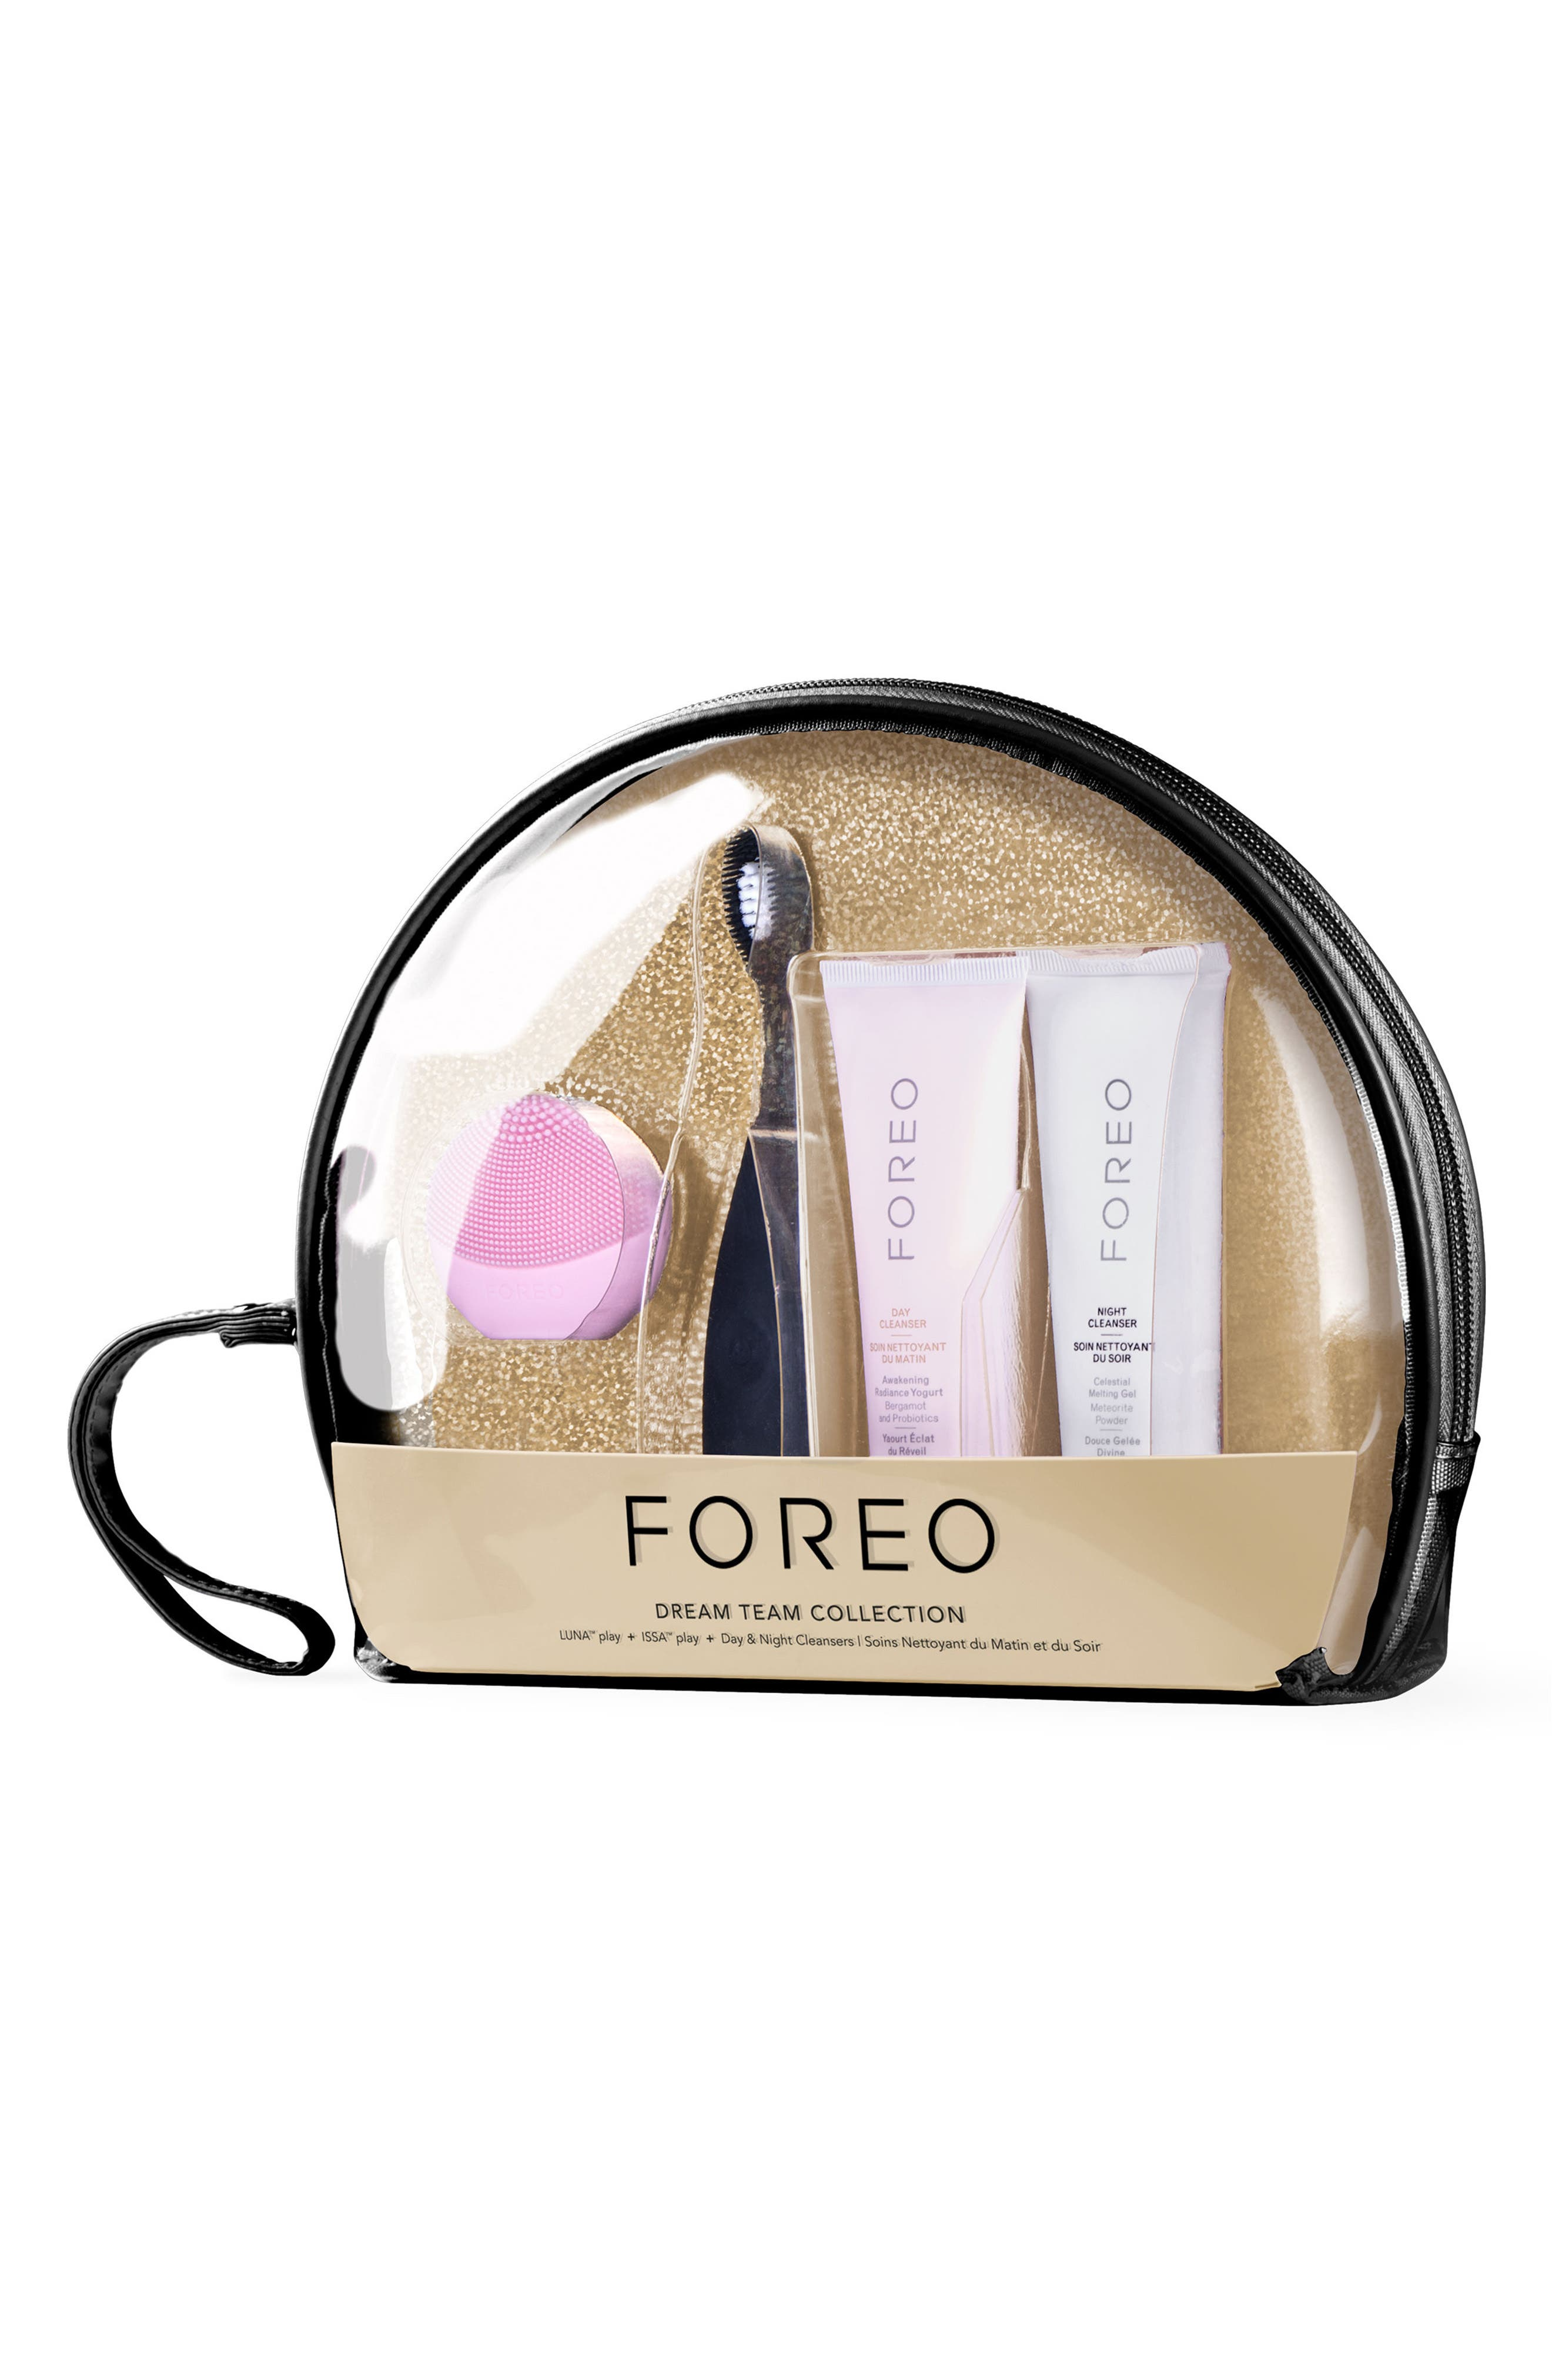 FOREO Dream Team Set ($134 Value)